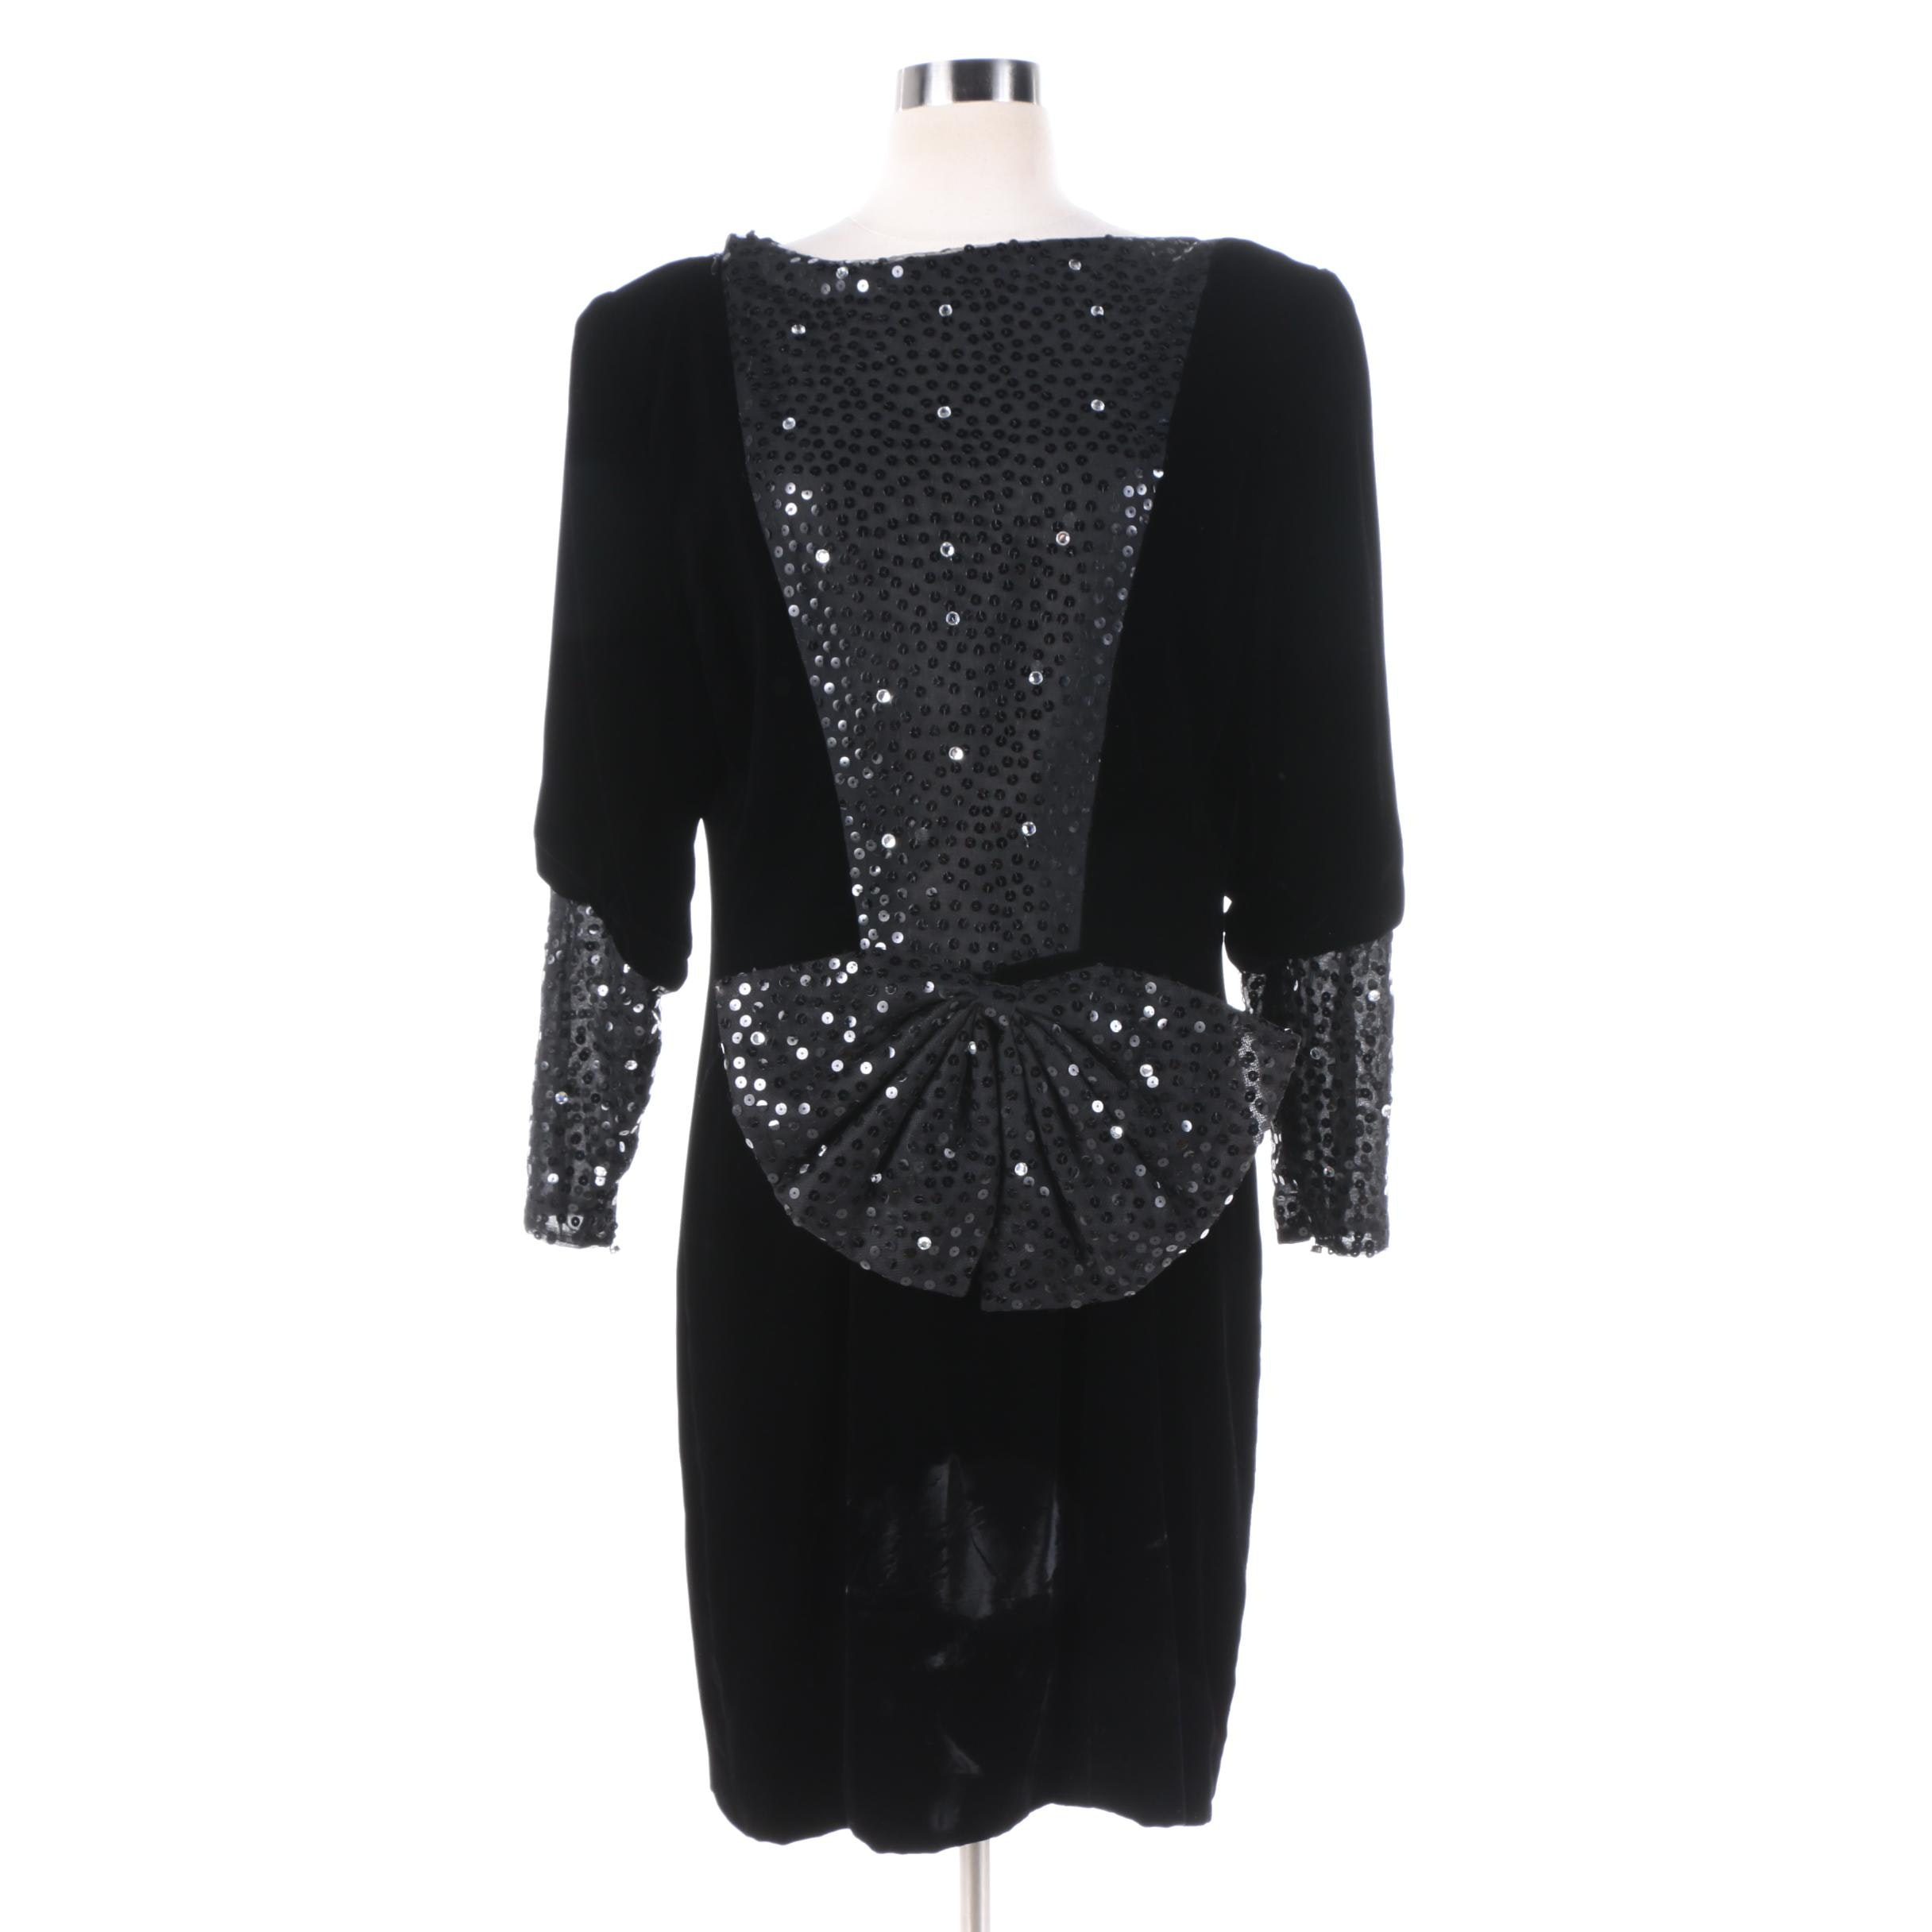 1980s Vintage Christian Dior Black Velvet and Sequin Evening Dress